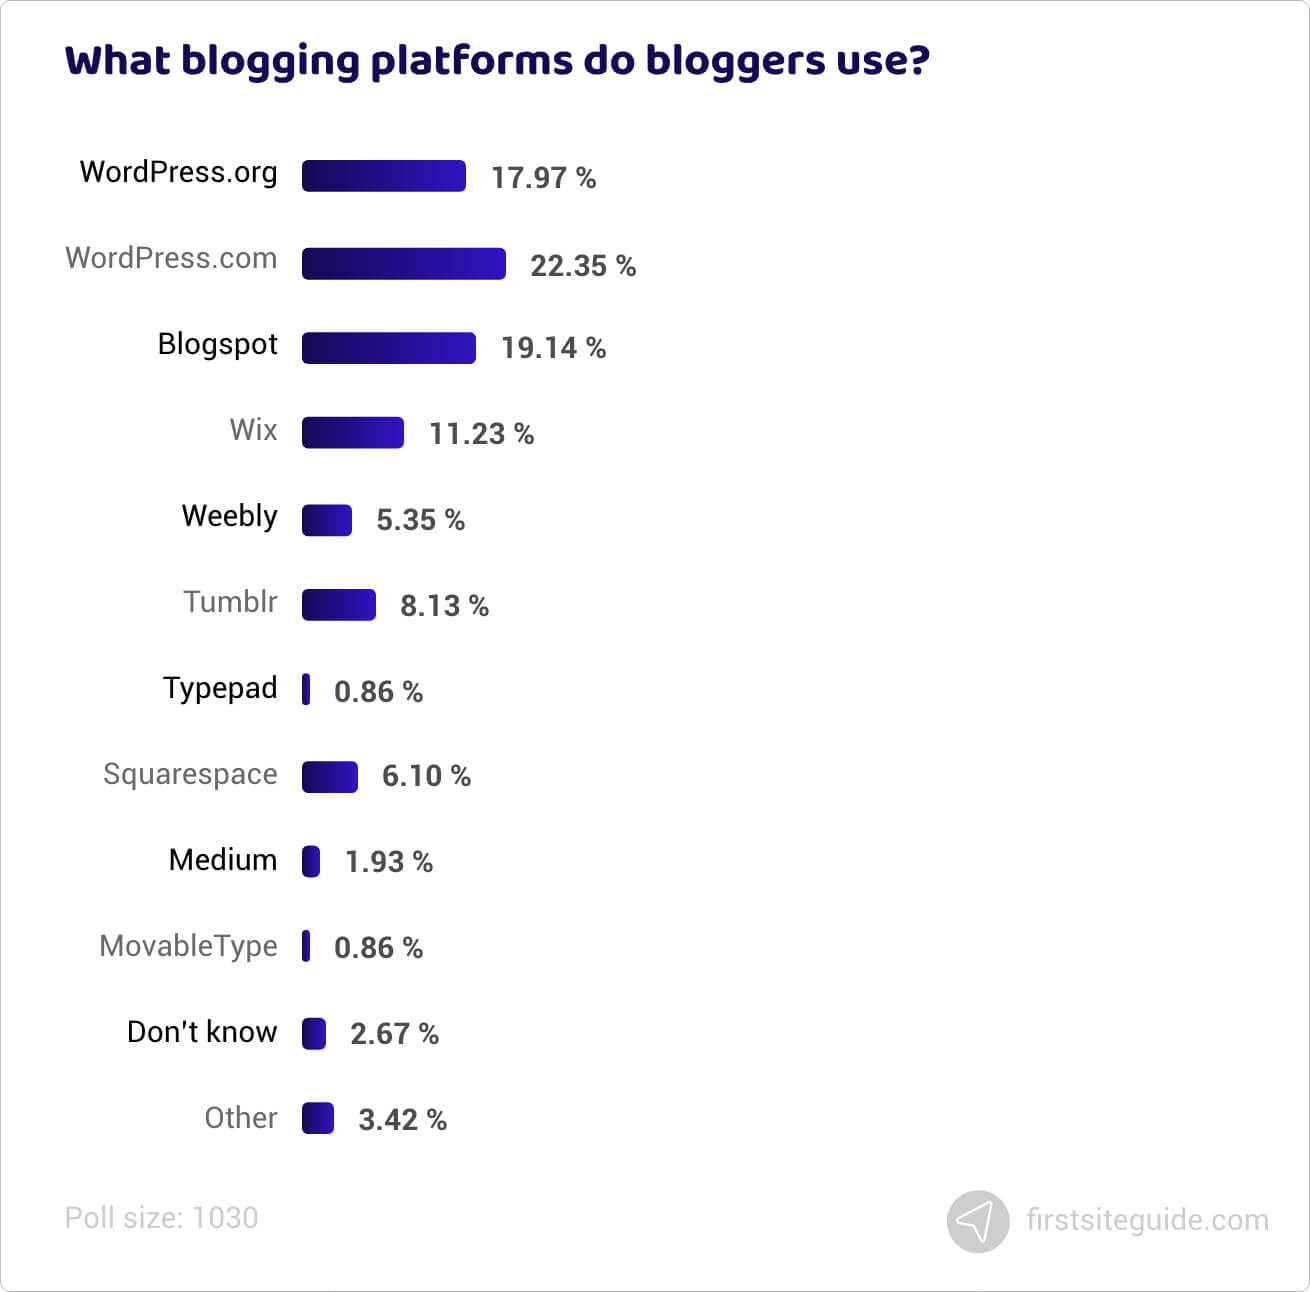 What blogging platforms do bloggers use